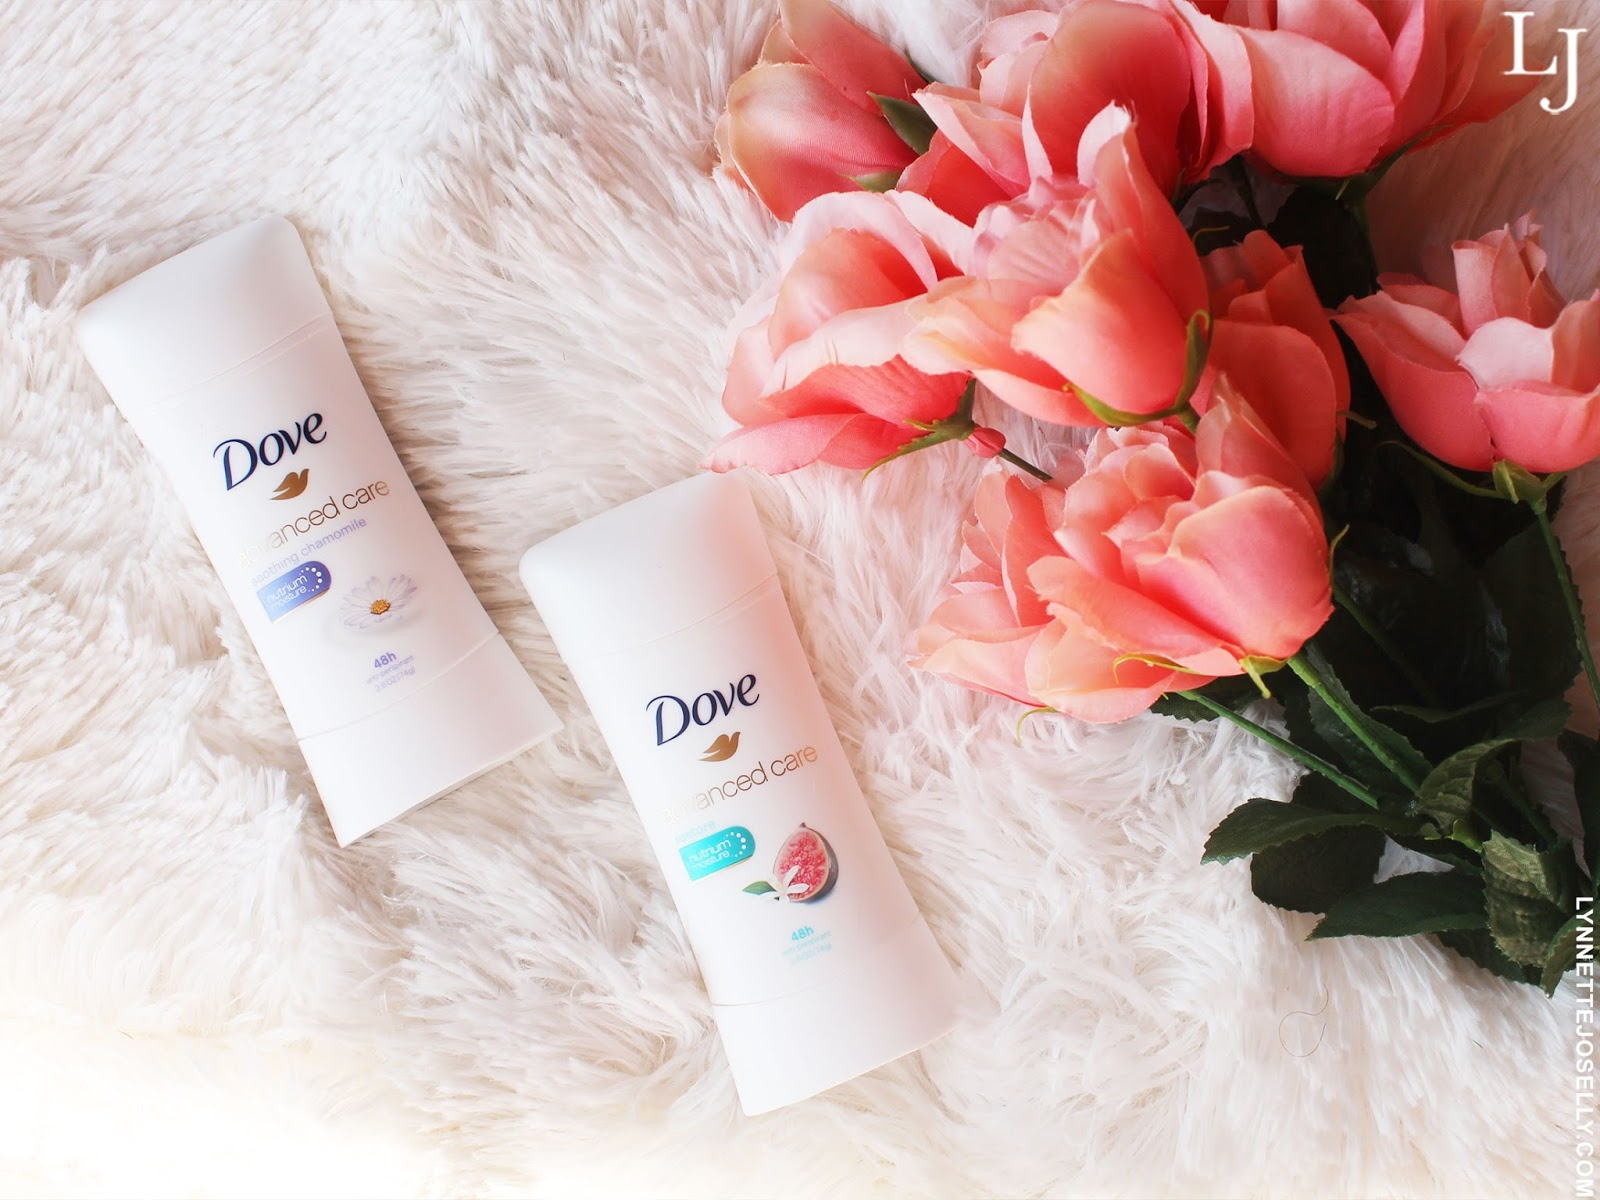 dove-advanced-care-antiperspirant